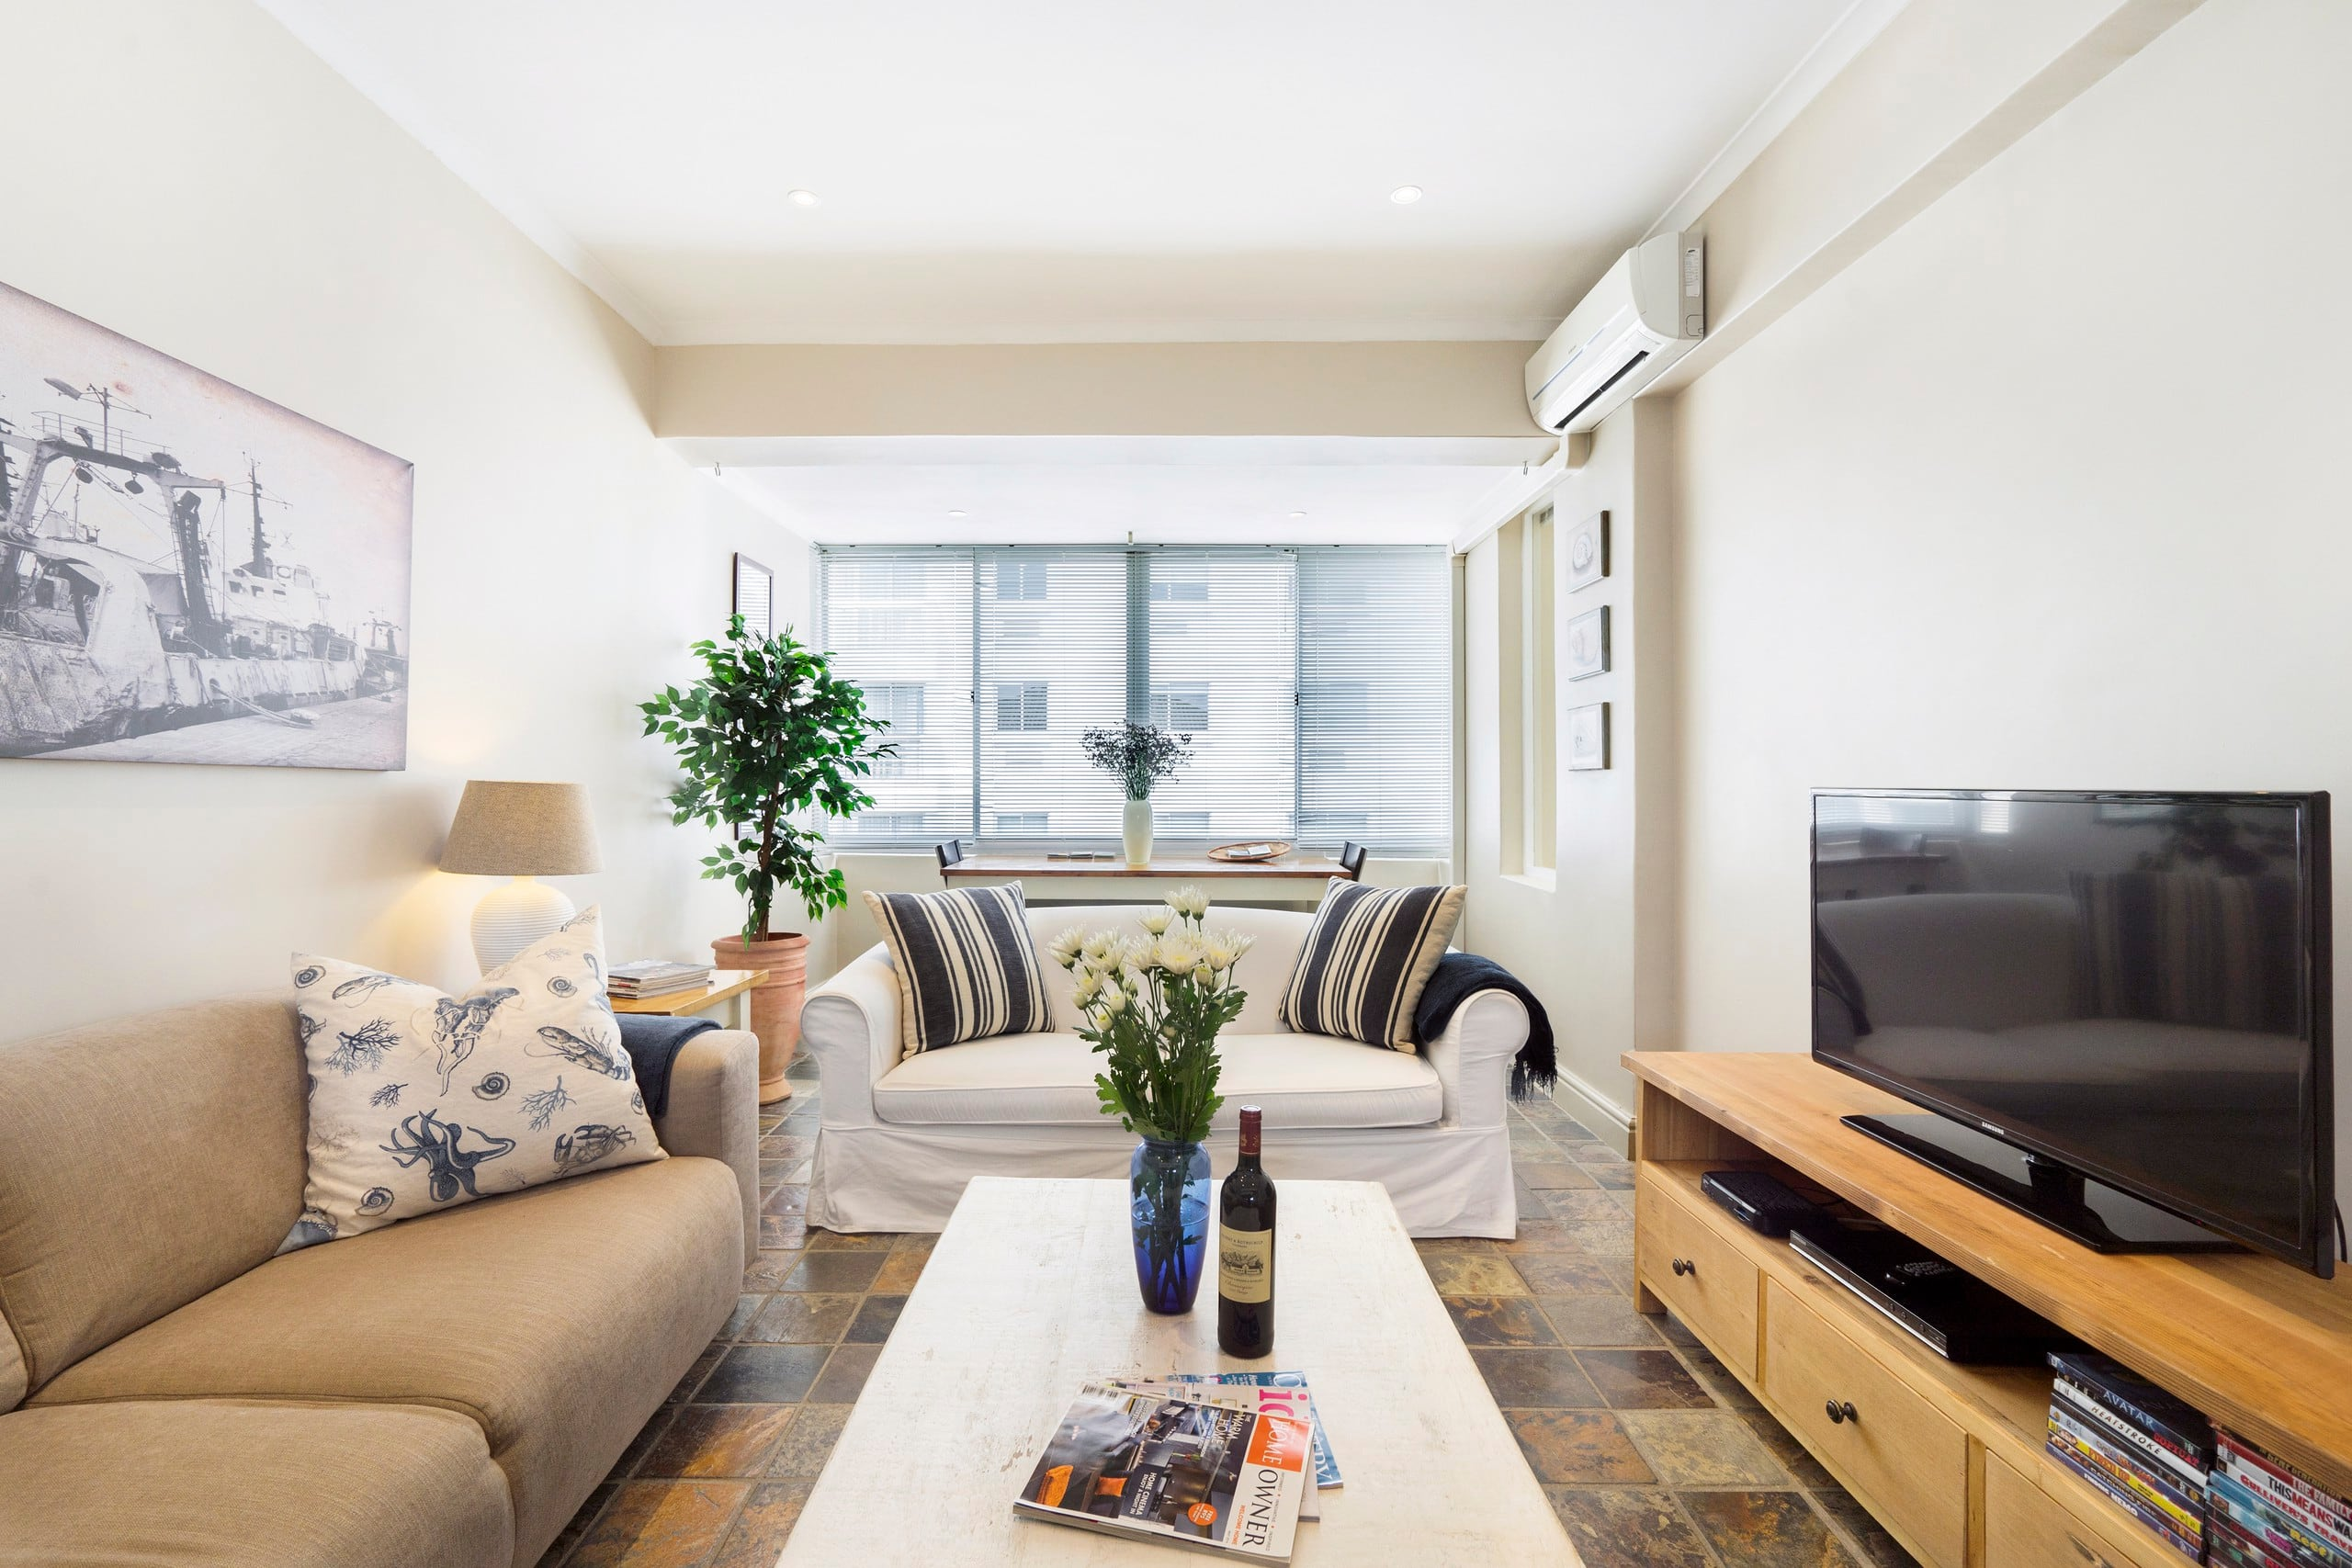 Rent A Room For A Day Cape Town